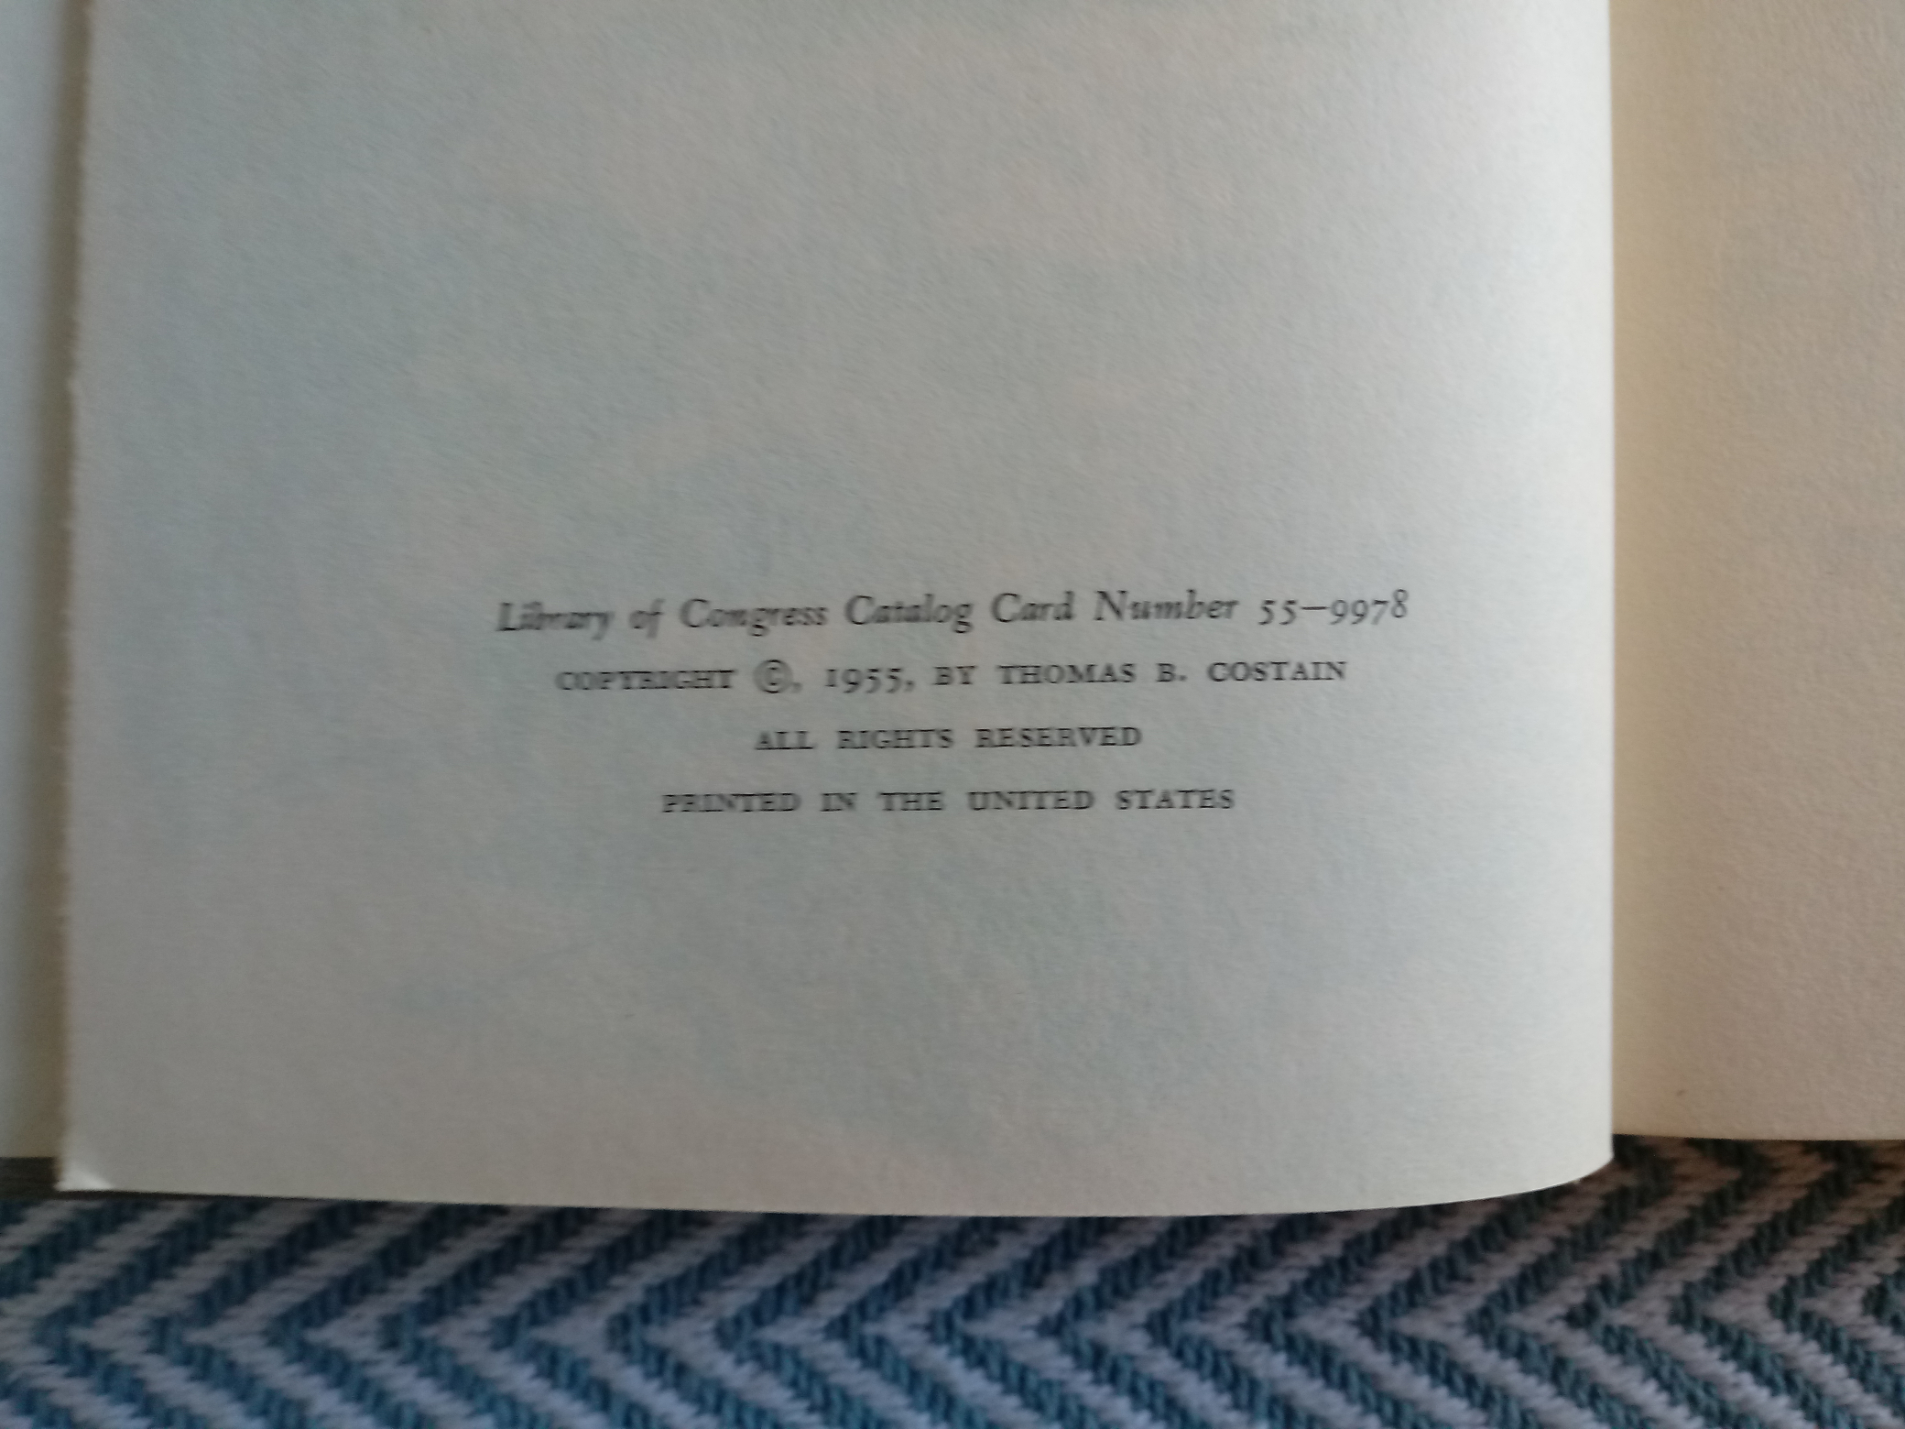 2 x The Tontine Volumes 1&2 by Thomas B. Costain hardback books 465 and 930 pages with inscription - Image 4 of 8